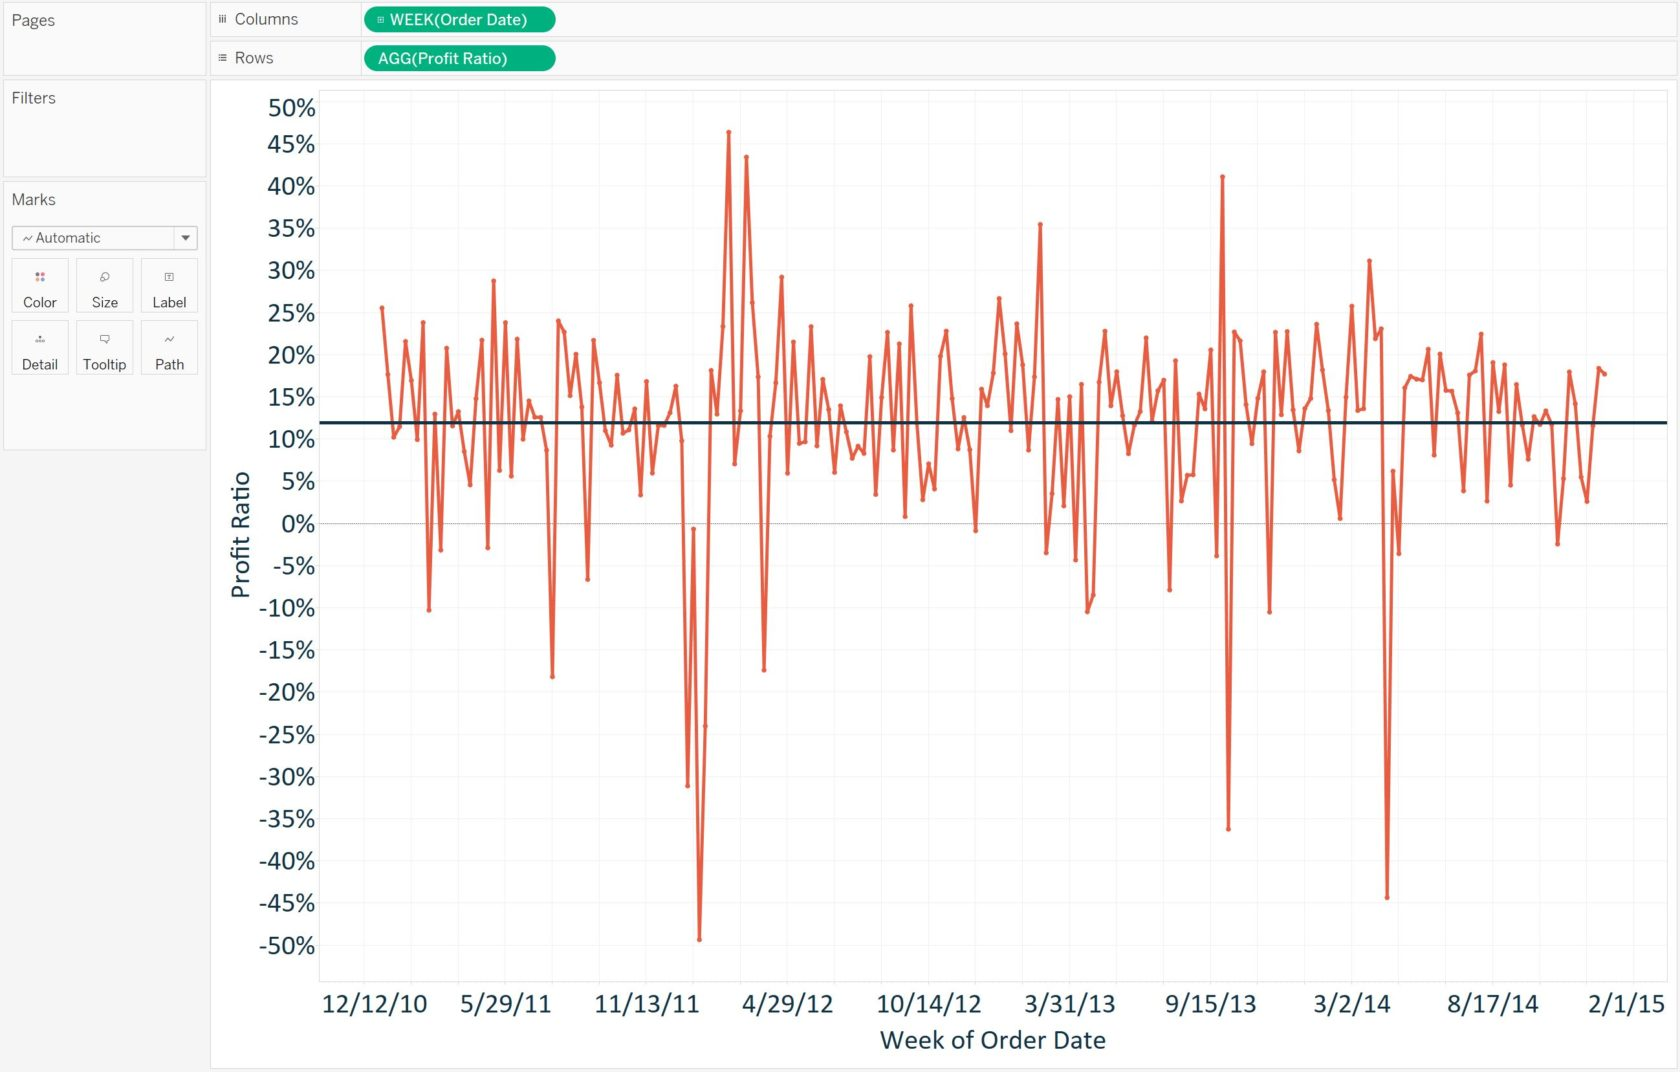 Tableau Profit Ratio by Week with Average Reference Line